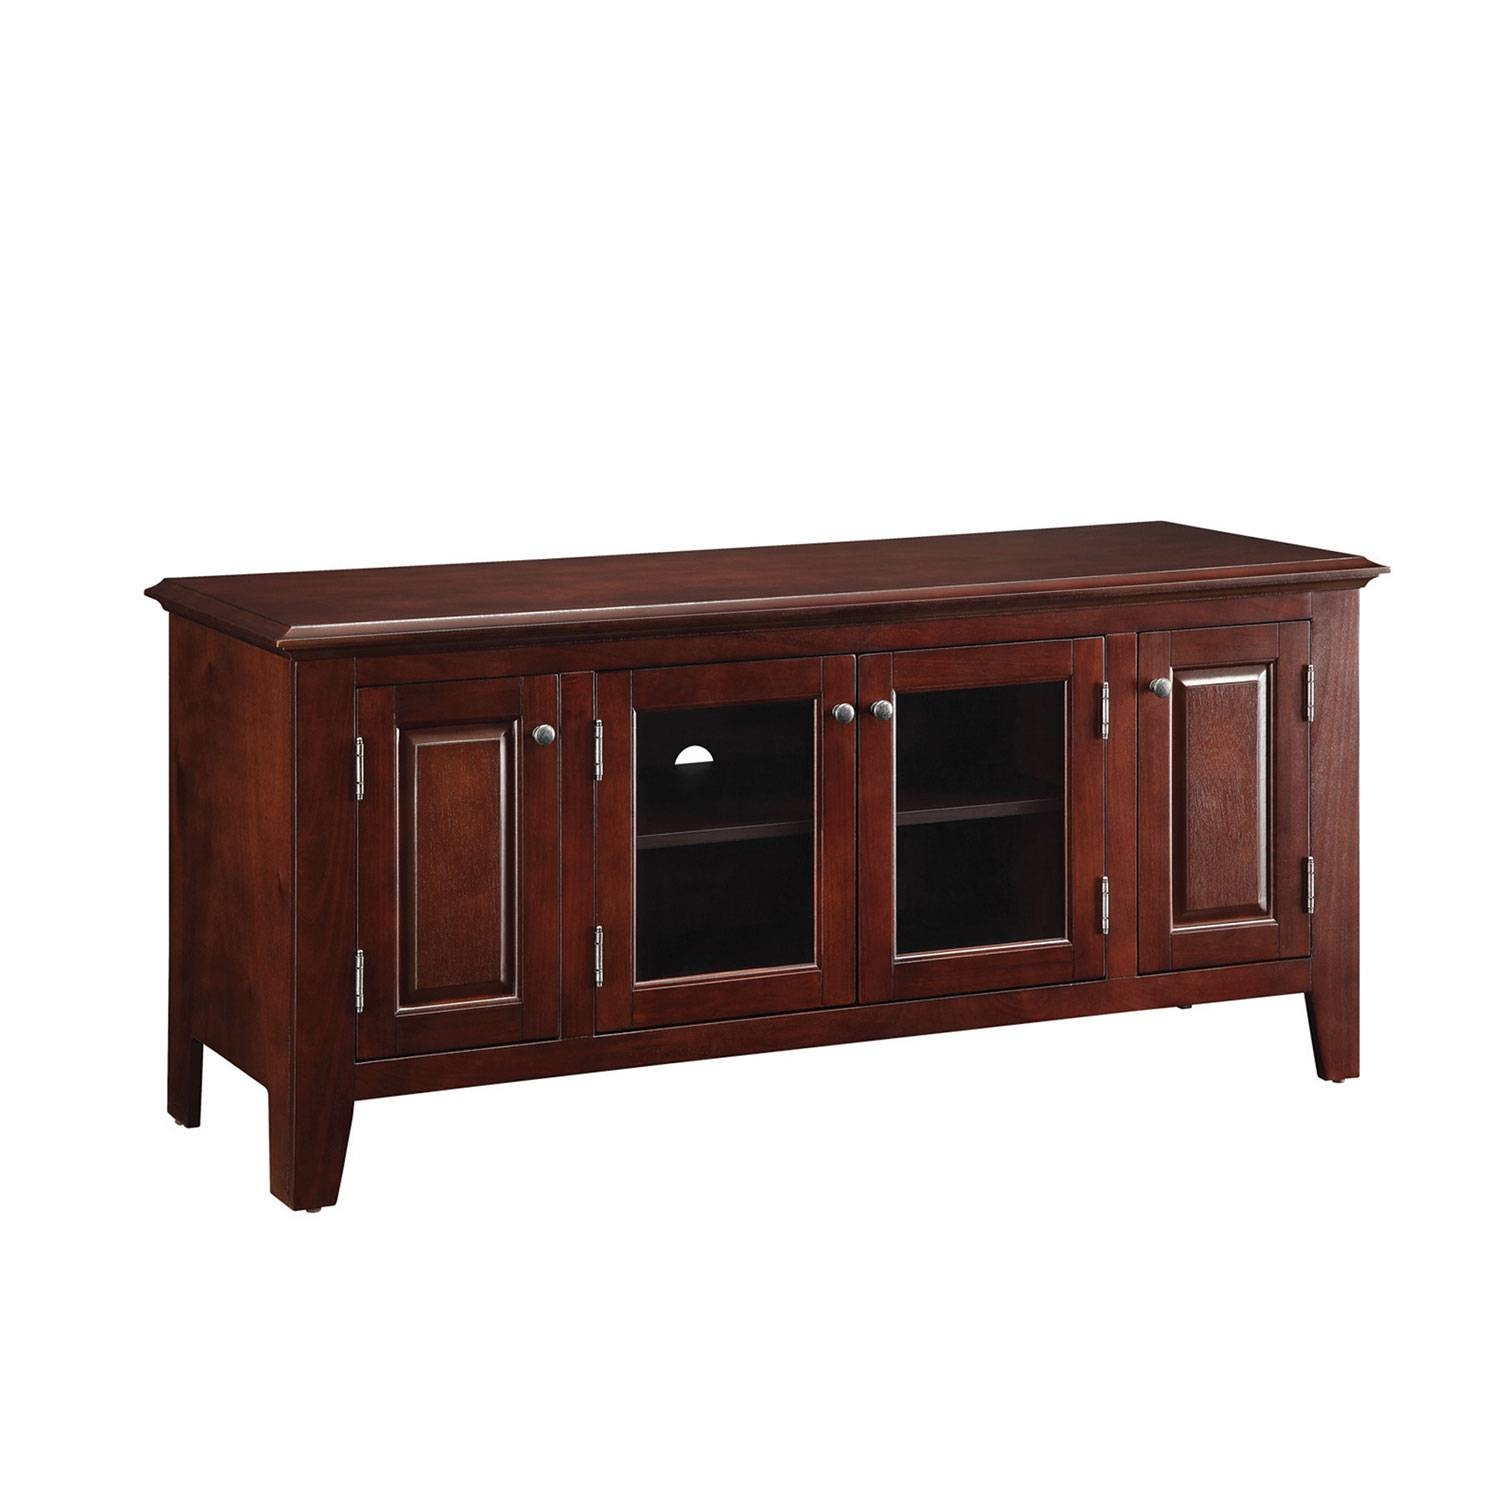 "Marcus 55"" Tv Stand - Espresso : Tv Stands - Best Buy Canada with Retro Corner Tv Stands (Image 4 of 15)"